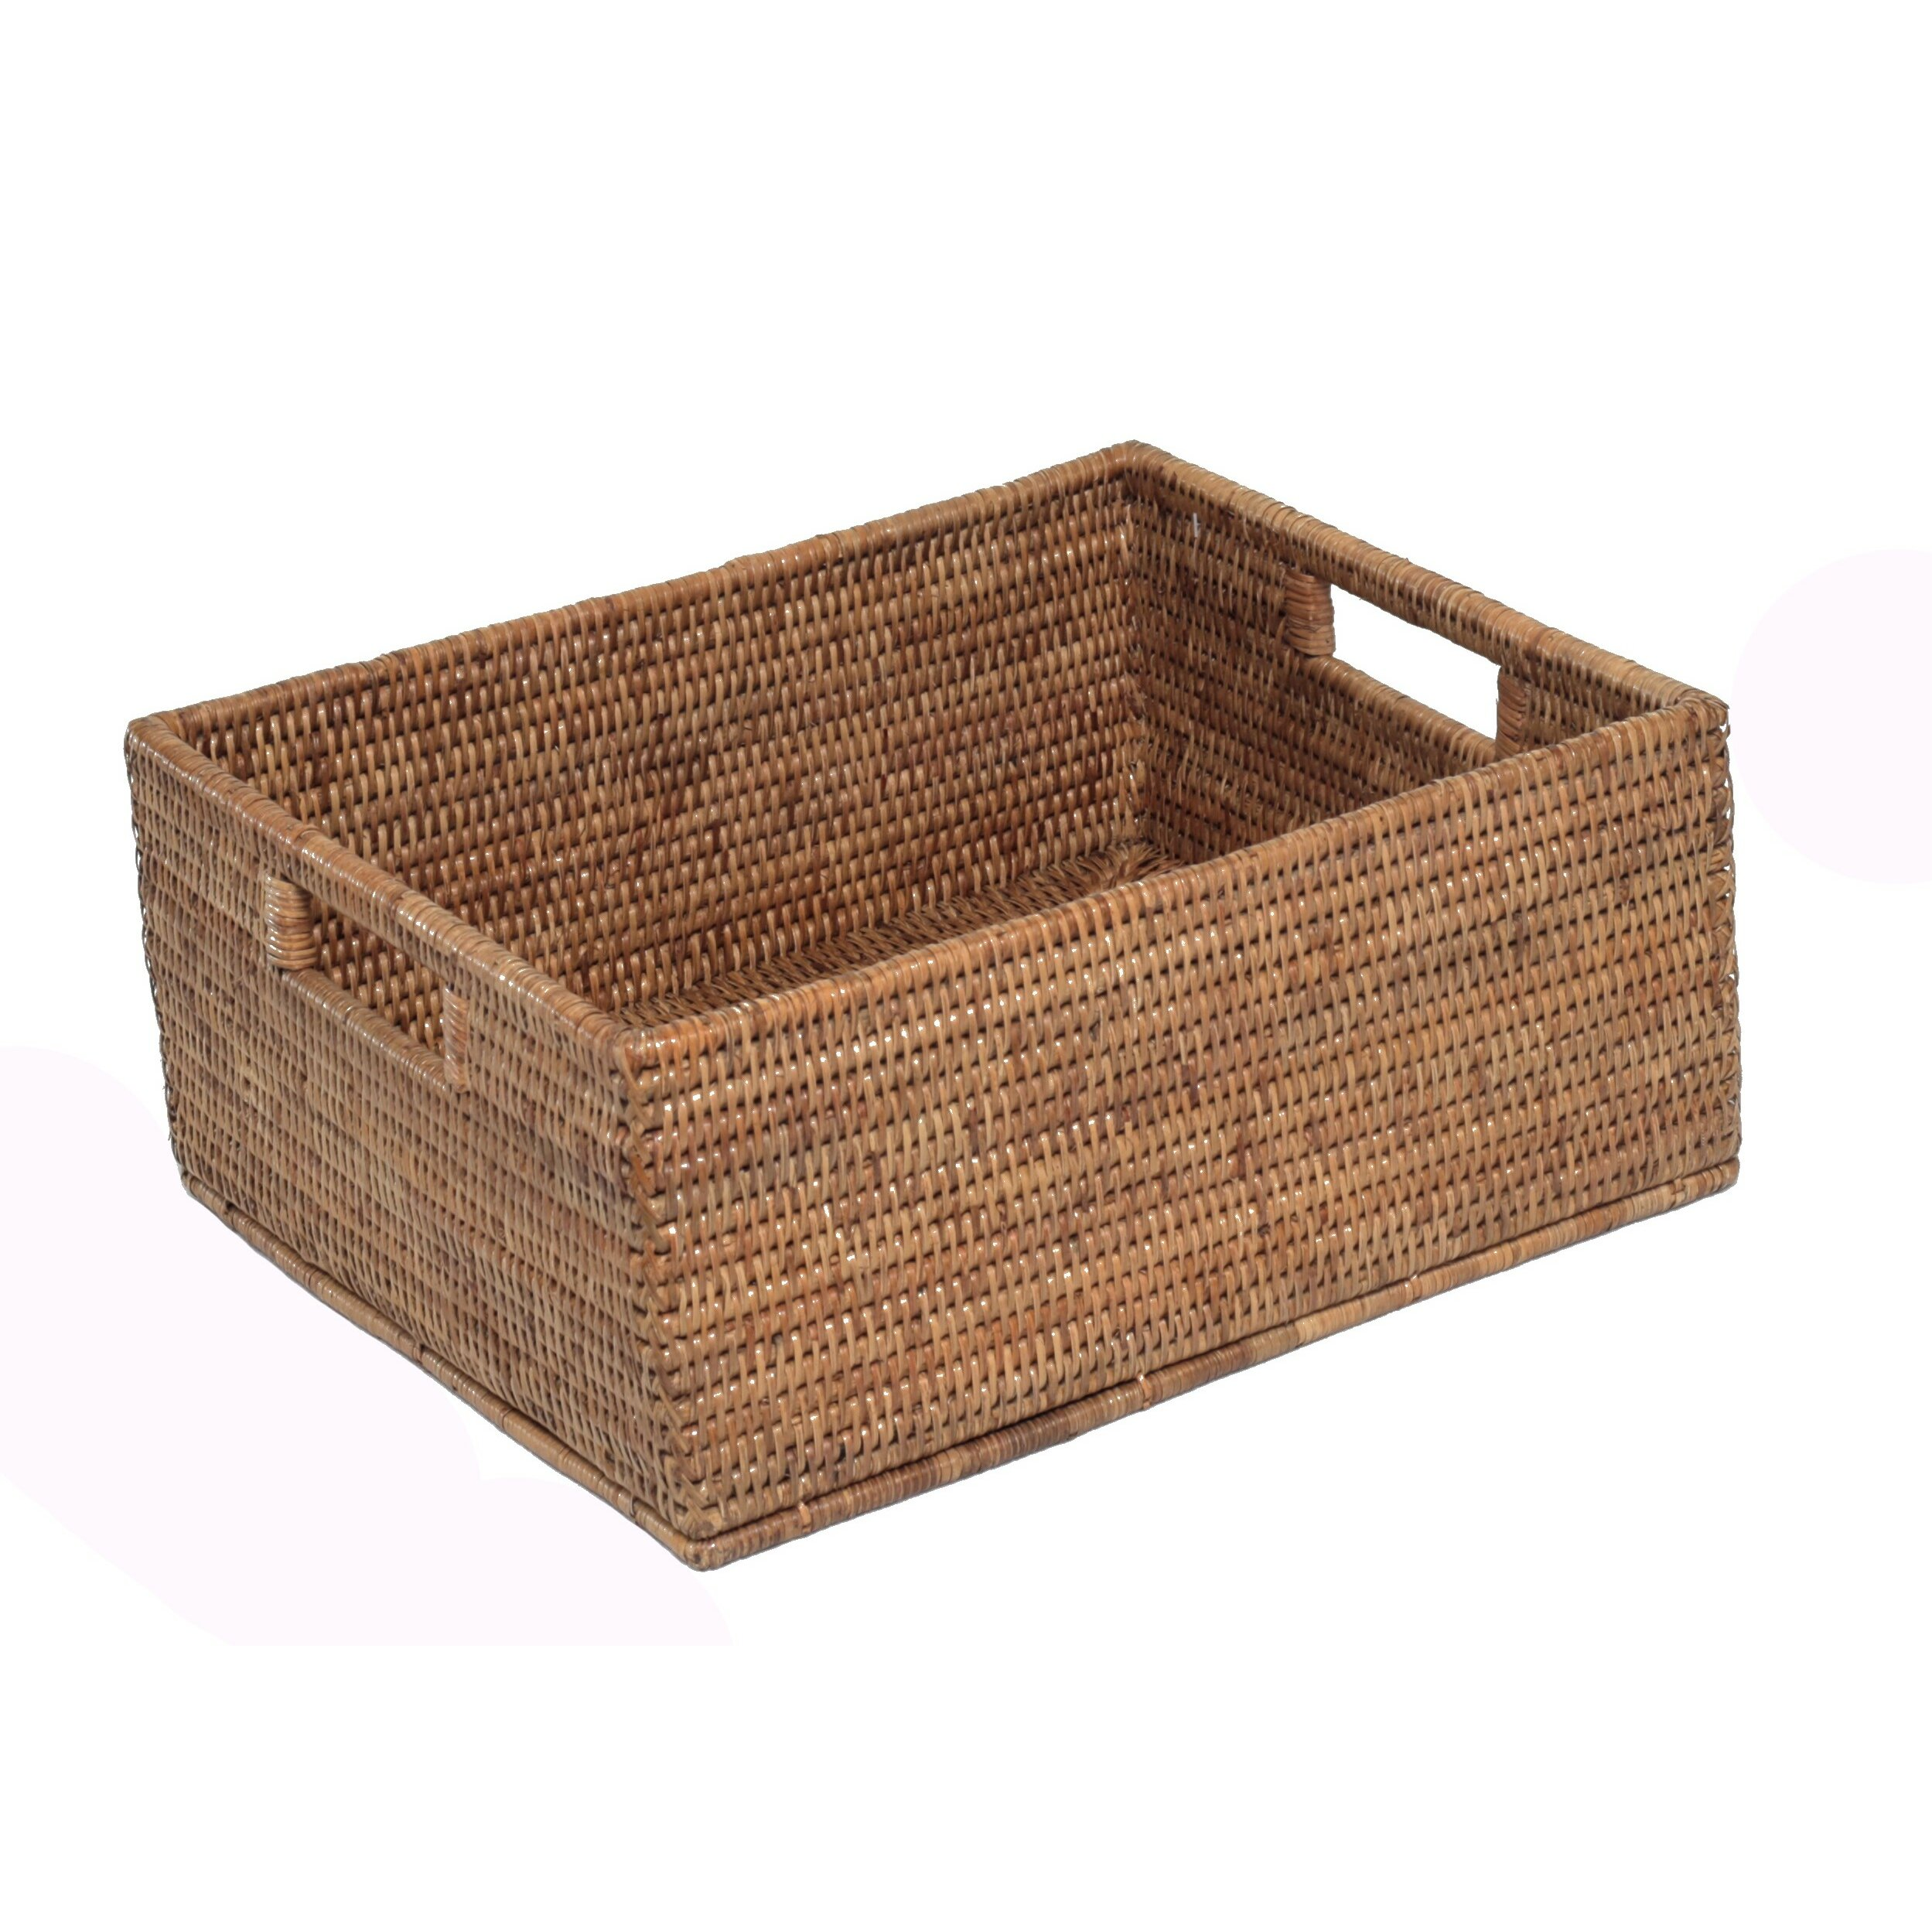 Rectangular Wicker Baskets With Handles : Artifacts trading rattan rectangular basket with cutout